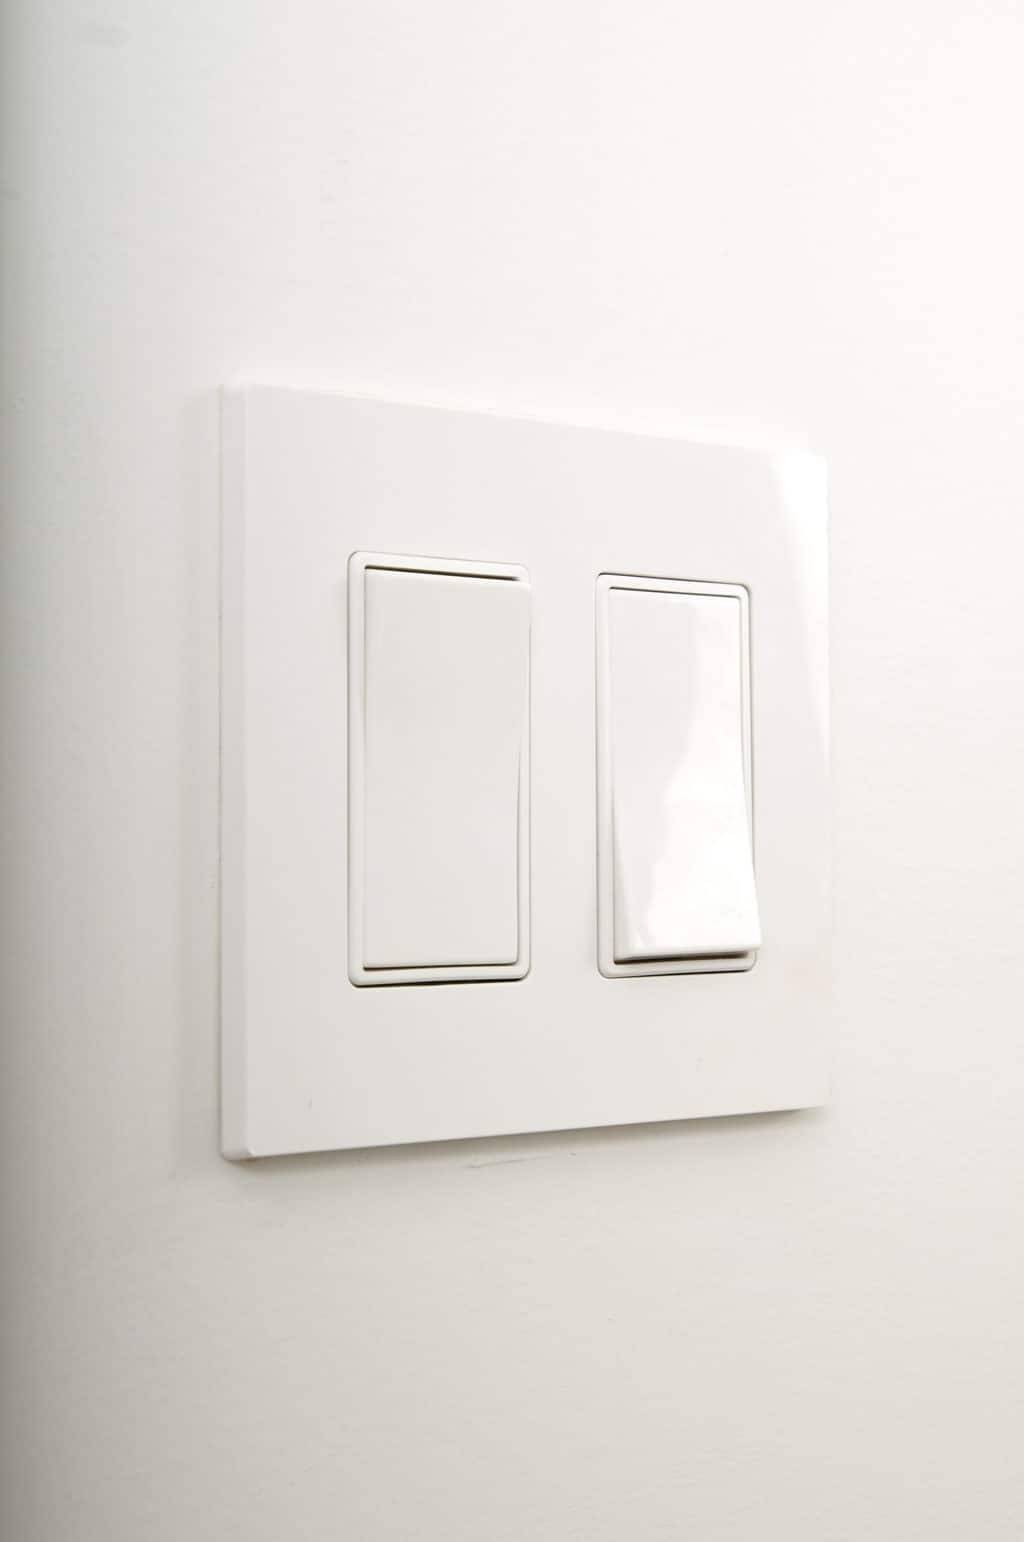 Light switches on wall